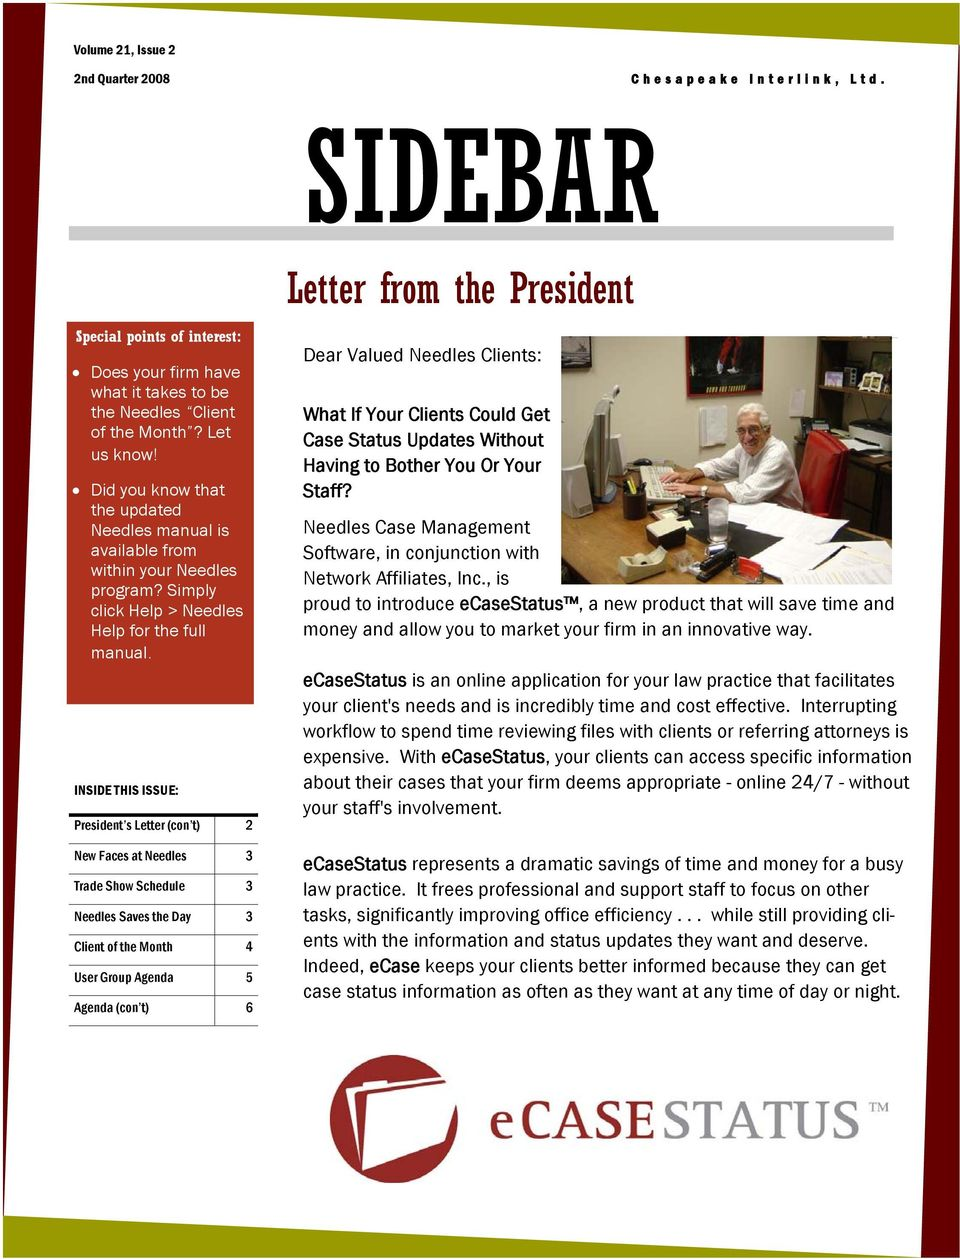 INSIDE THIS ISSUE: President s Letter (con t) 2 New Faces at Needles 3 Trade Show Schedule 3 Needles Saves the Day 3 Client of the Month 4 User Group Agenda 5 Agenda (con t) 6 Letter from the